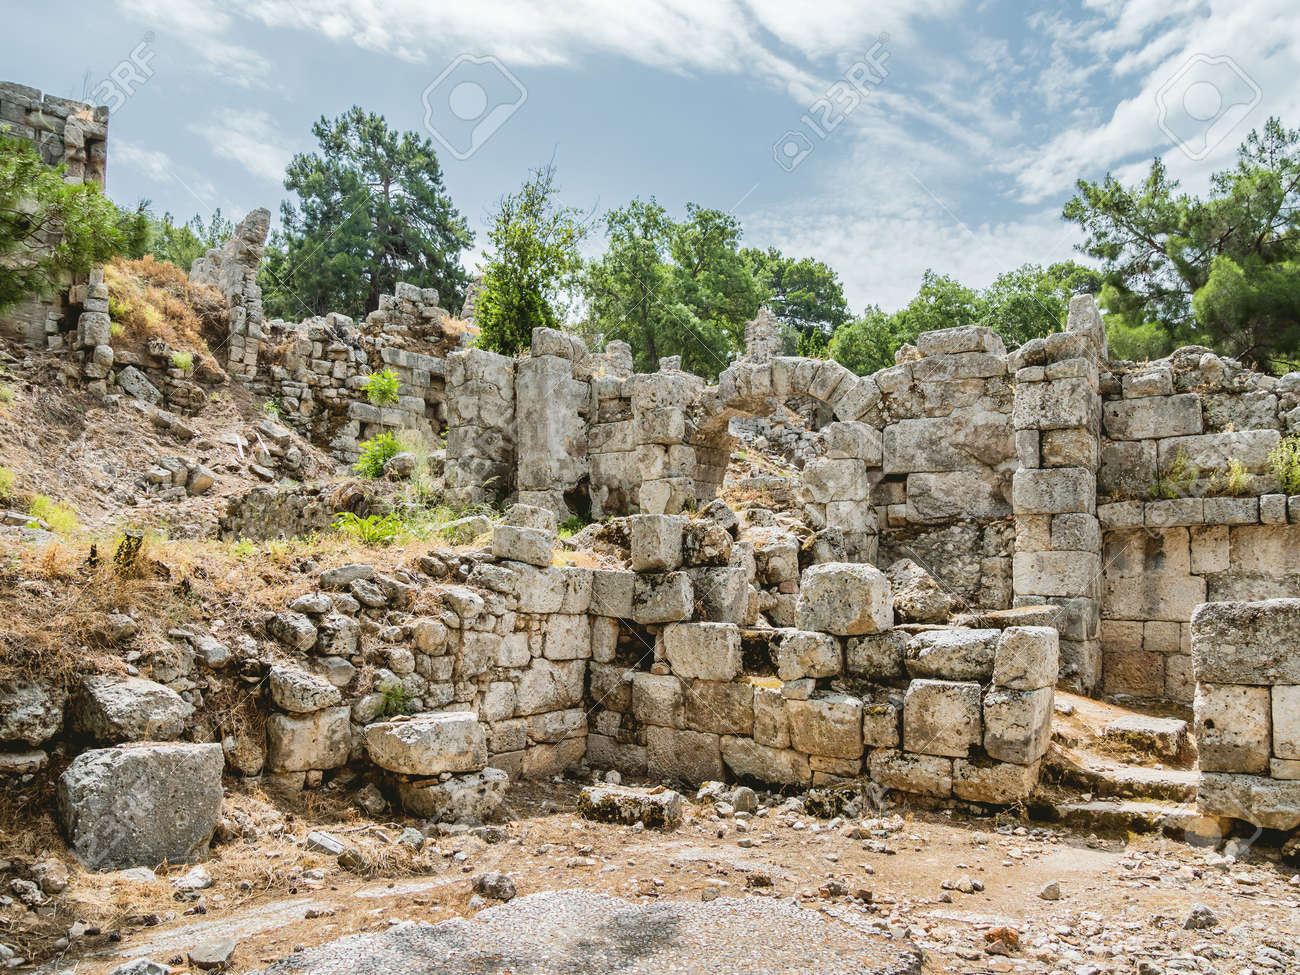 Ruins of large bath of ancient Phaselis city. Famous architectural landmark, Kemer district, Antalya province. Turkey. - 172806642